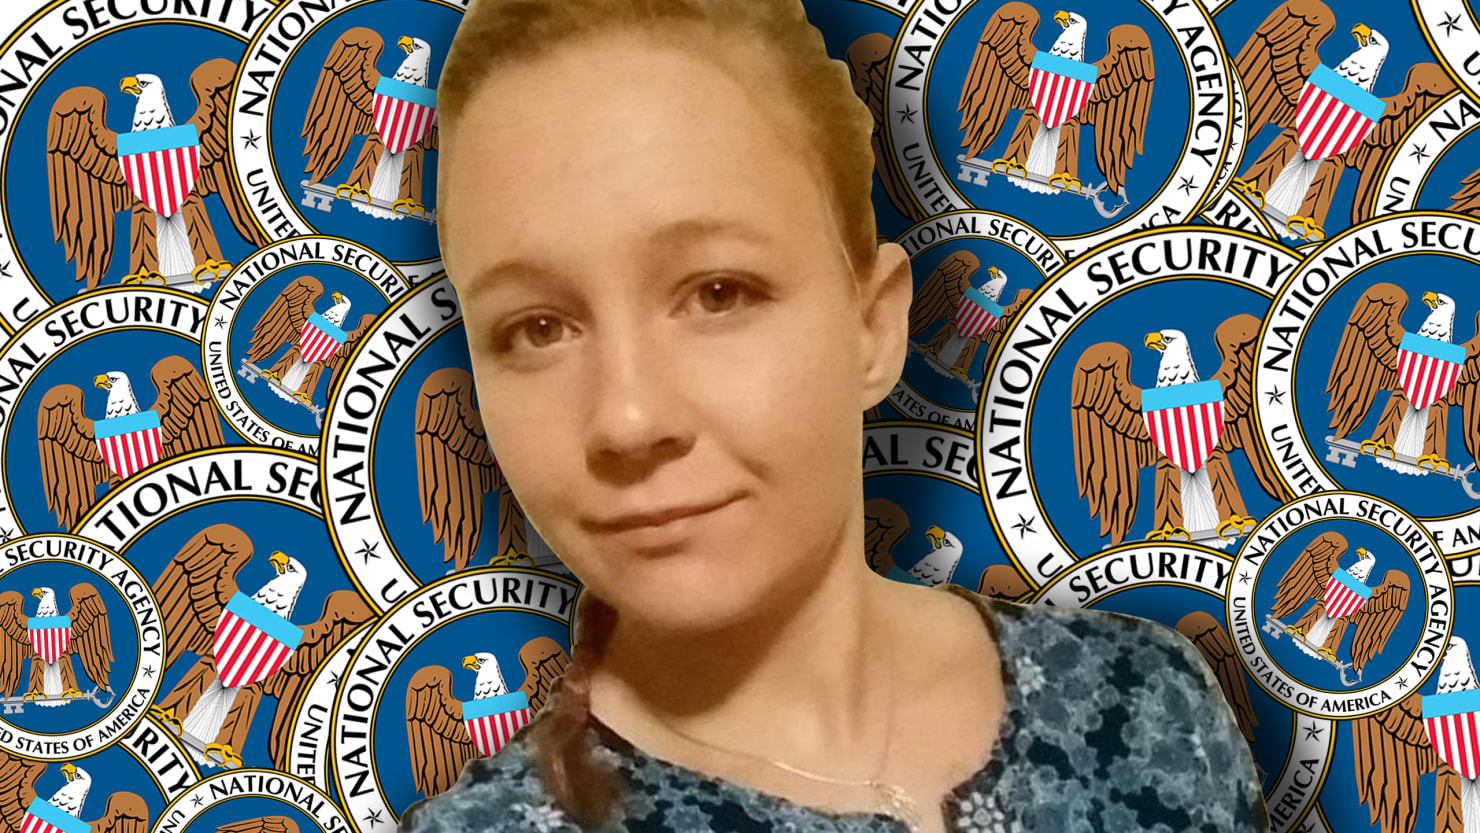 Accused Leaker Reality Winner Worked at NSA Listening Post